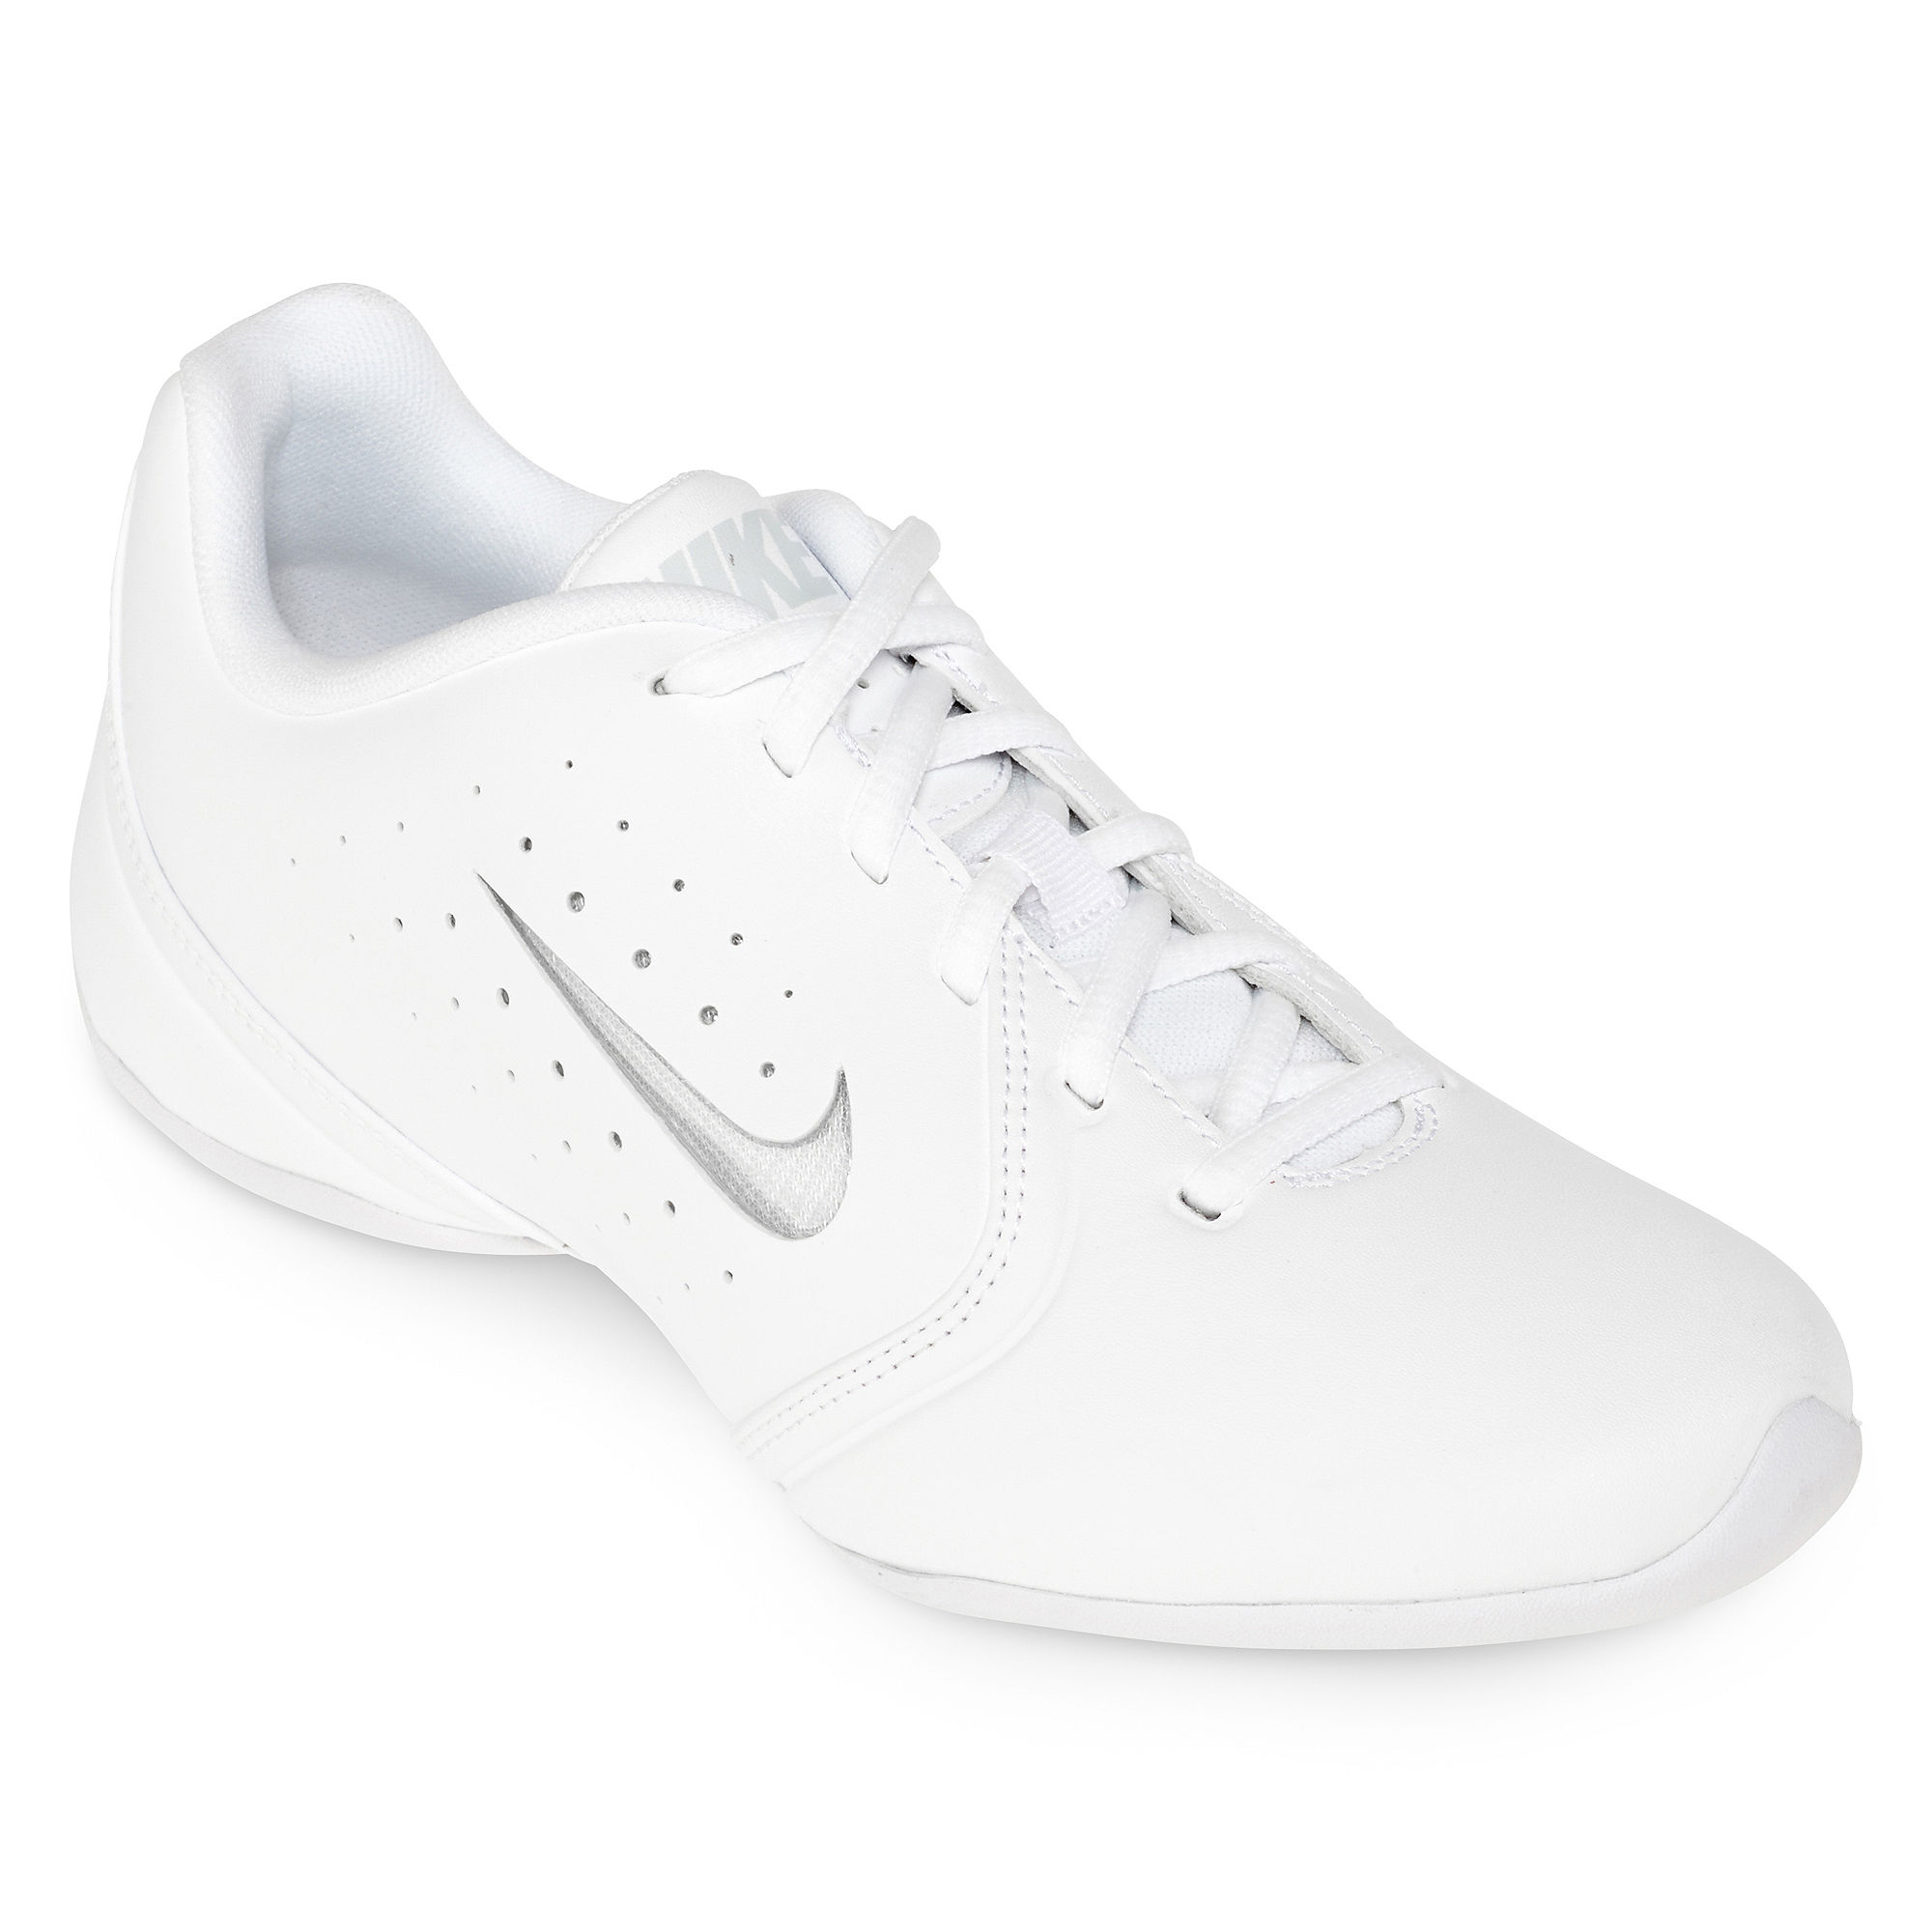 ... UPC 884802335481 product image for Nike Sideline III Womens Cheerleading  Shoes  d0b56af19